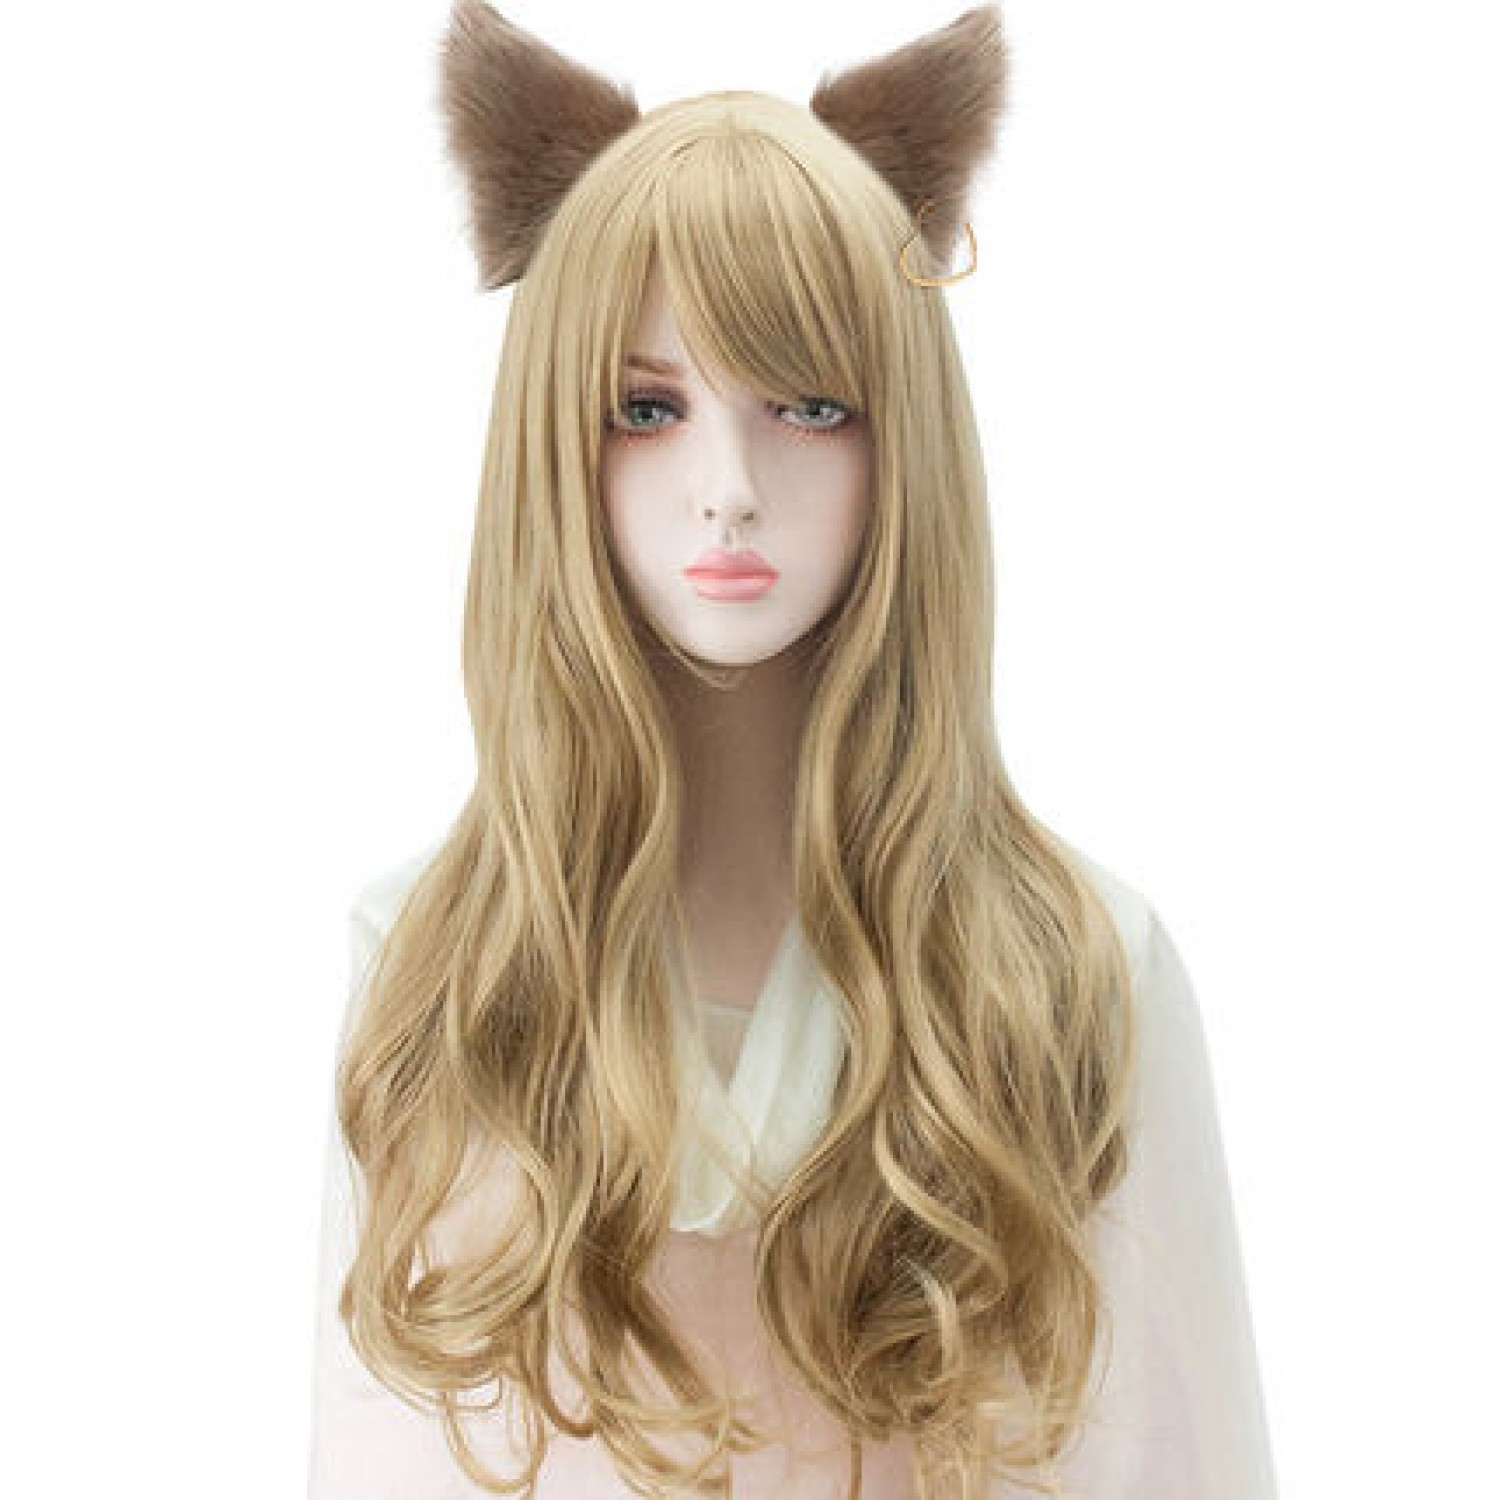 League of Legends LoL Ahri the Nine-Tailed Fox Cosplay Wig